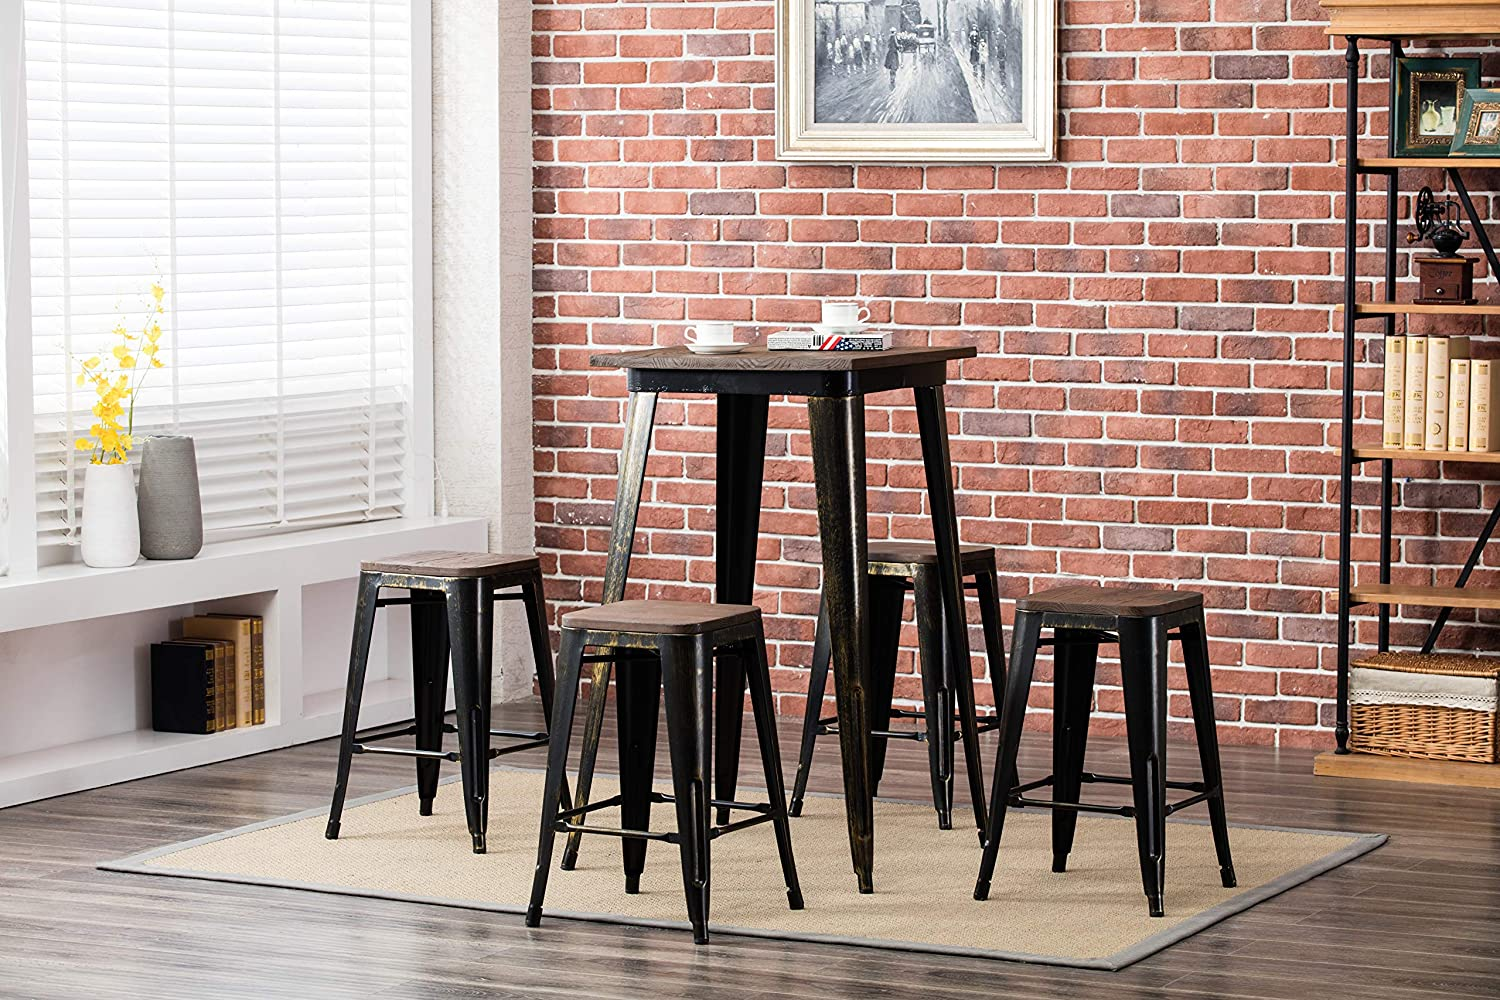 Porthos Home Counter Height (24 inch) Metal Cafe Wood Seat for Restaurant or Home, Tolix Style, Set of 4 Stools, No Assembly Required Bar Chair, One Size, Vintage Copper